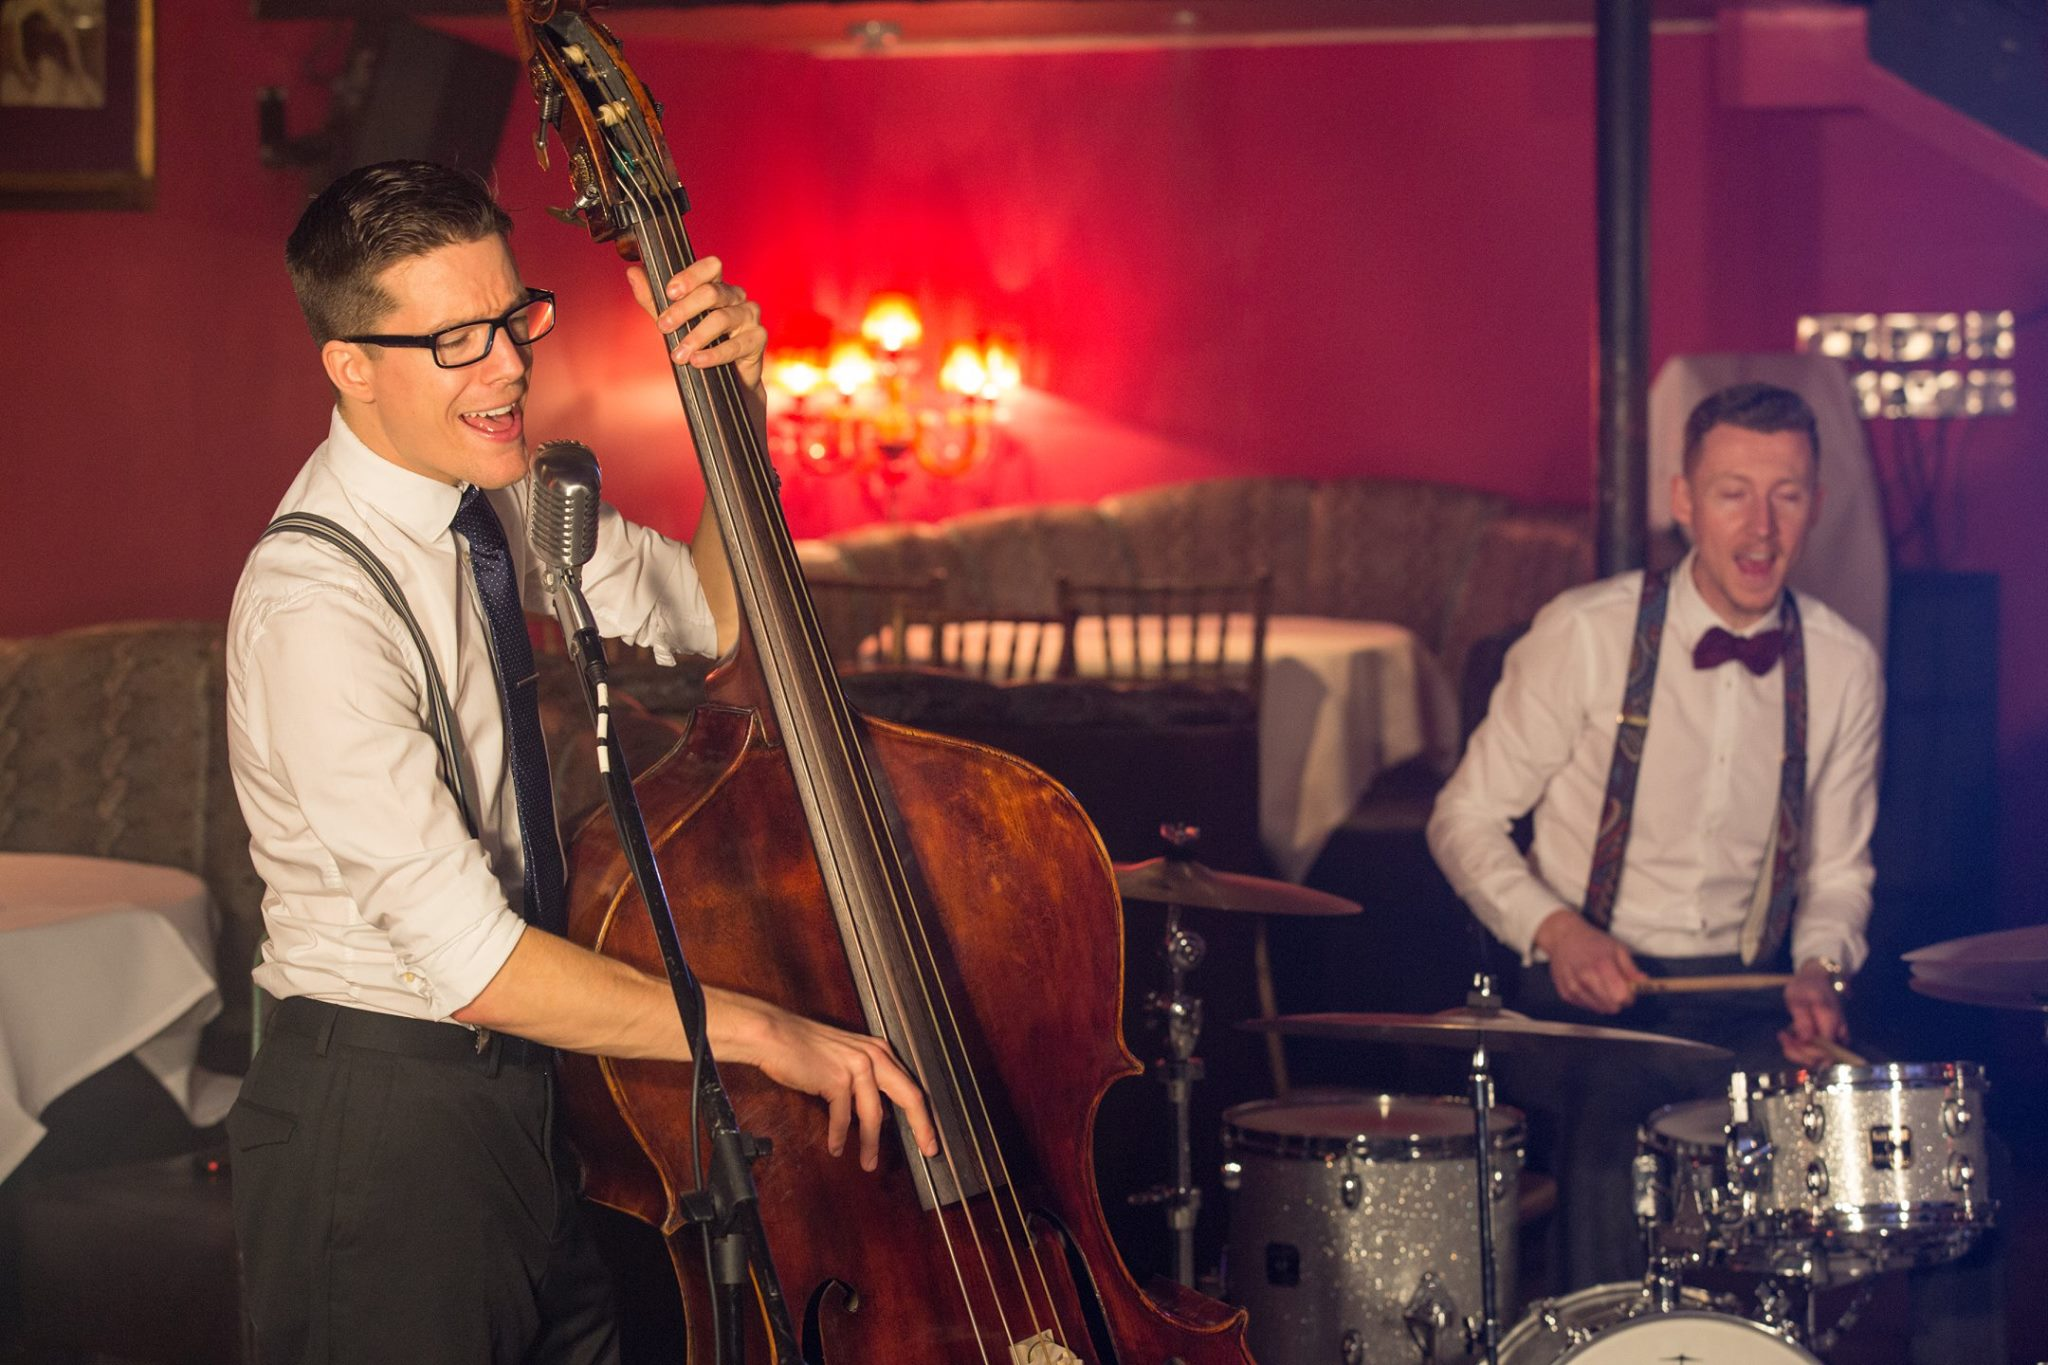 London swing band